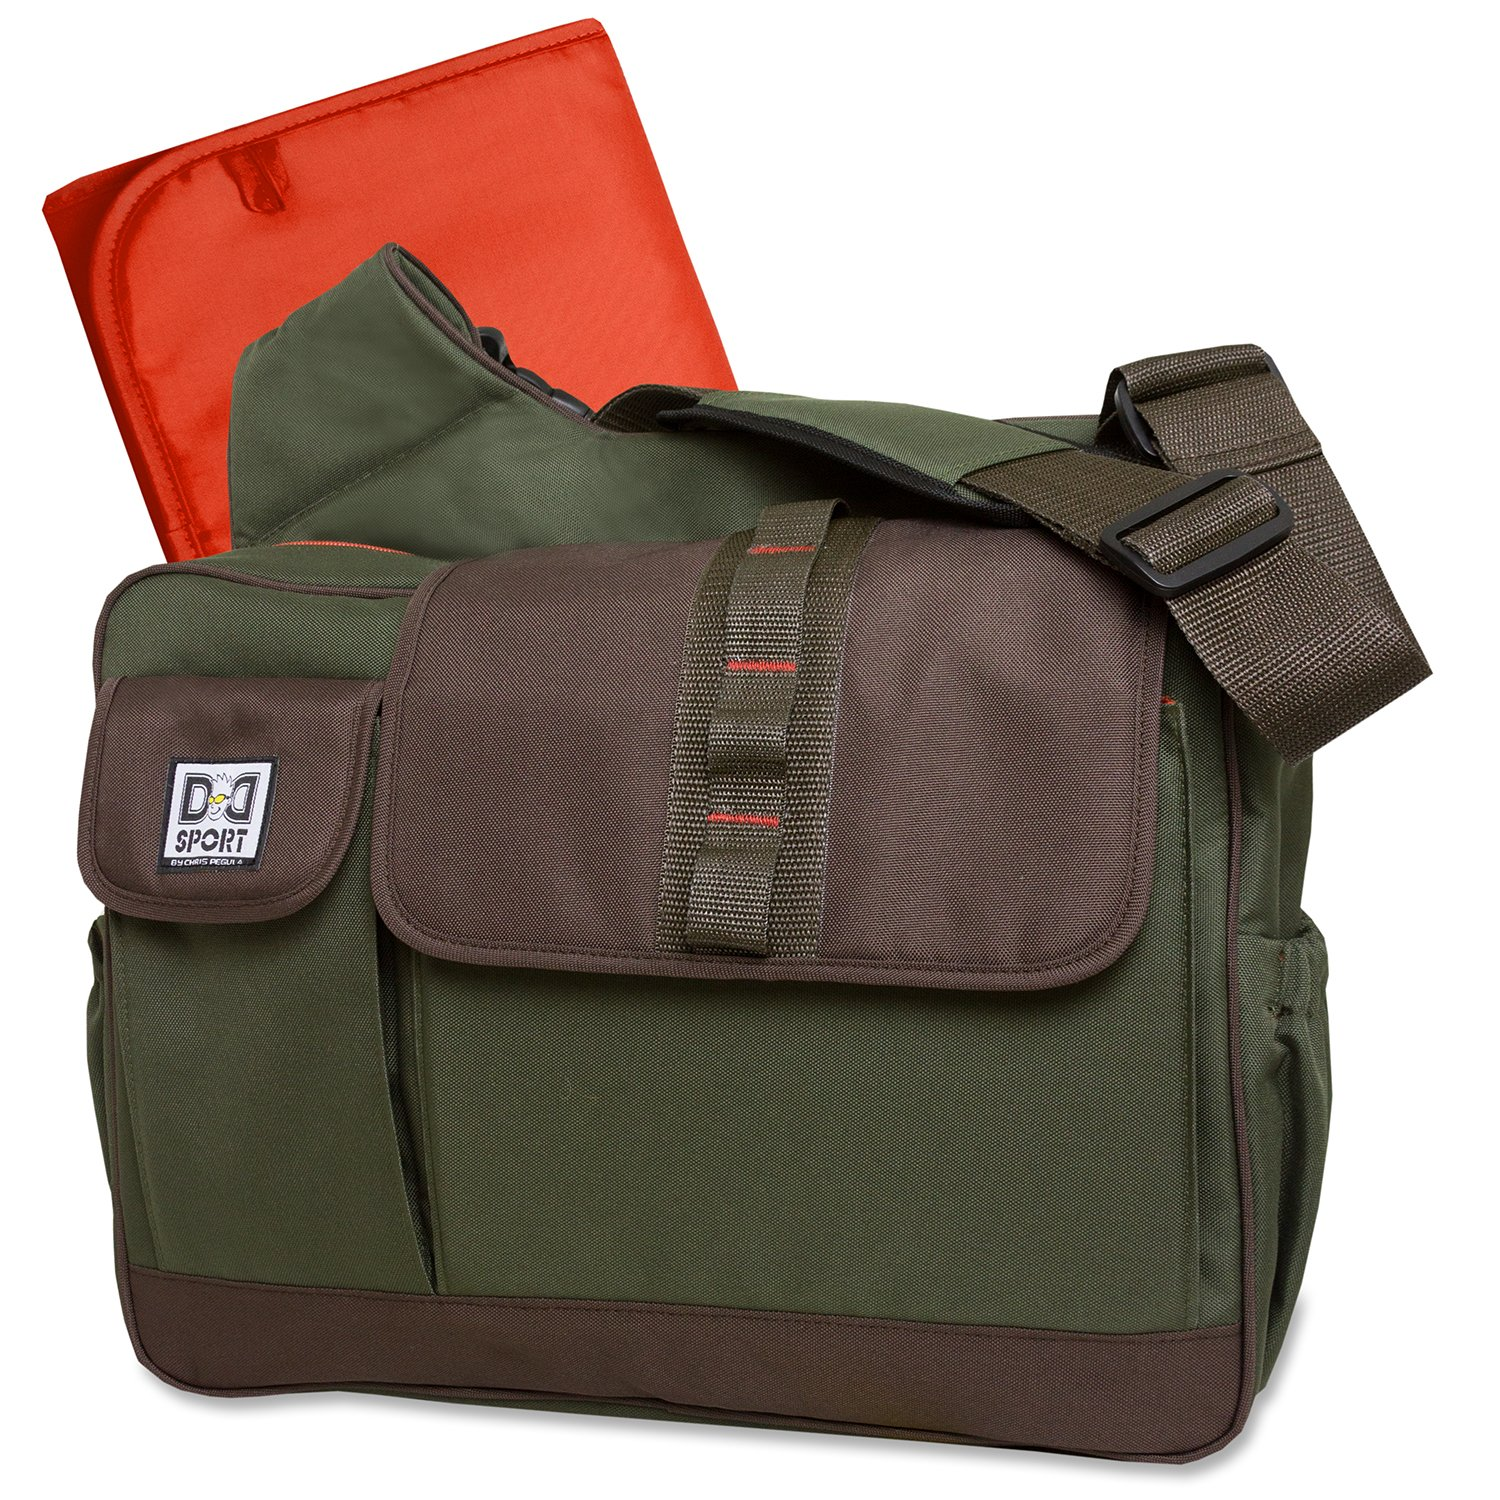 Top 5 Best Diaper Bags for Dads Reviews in 2020 4